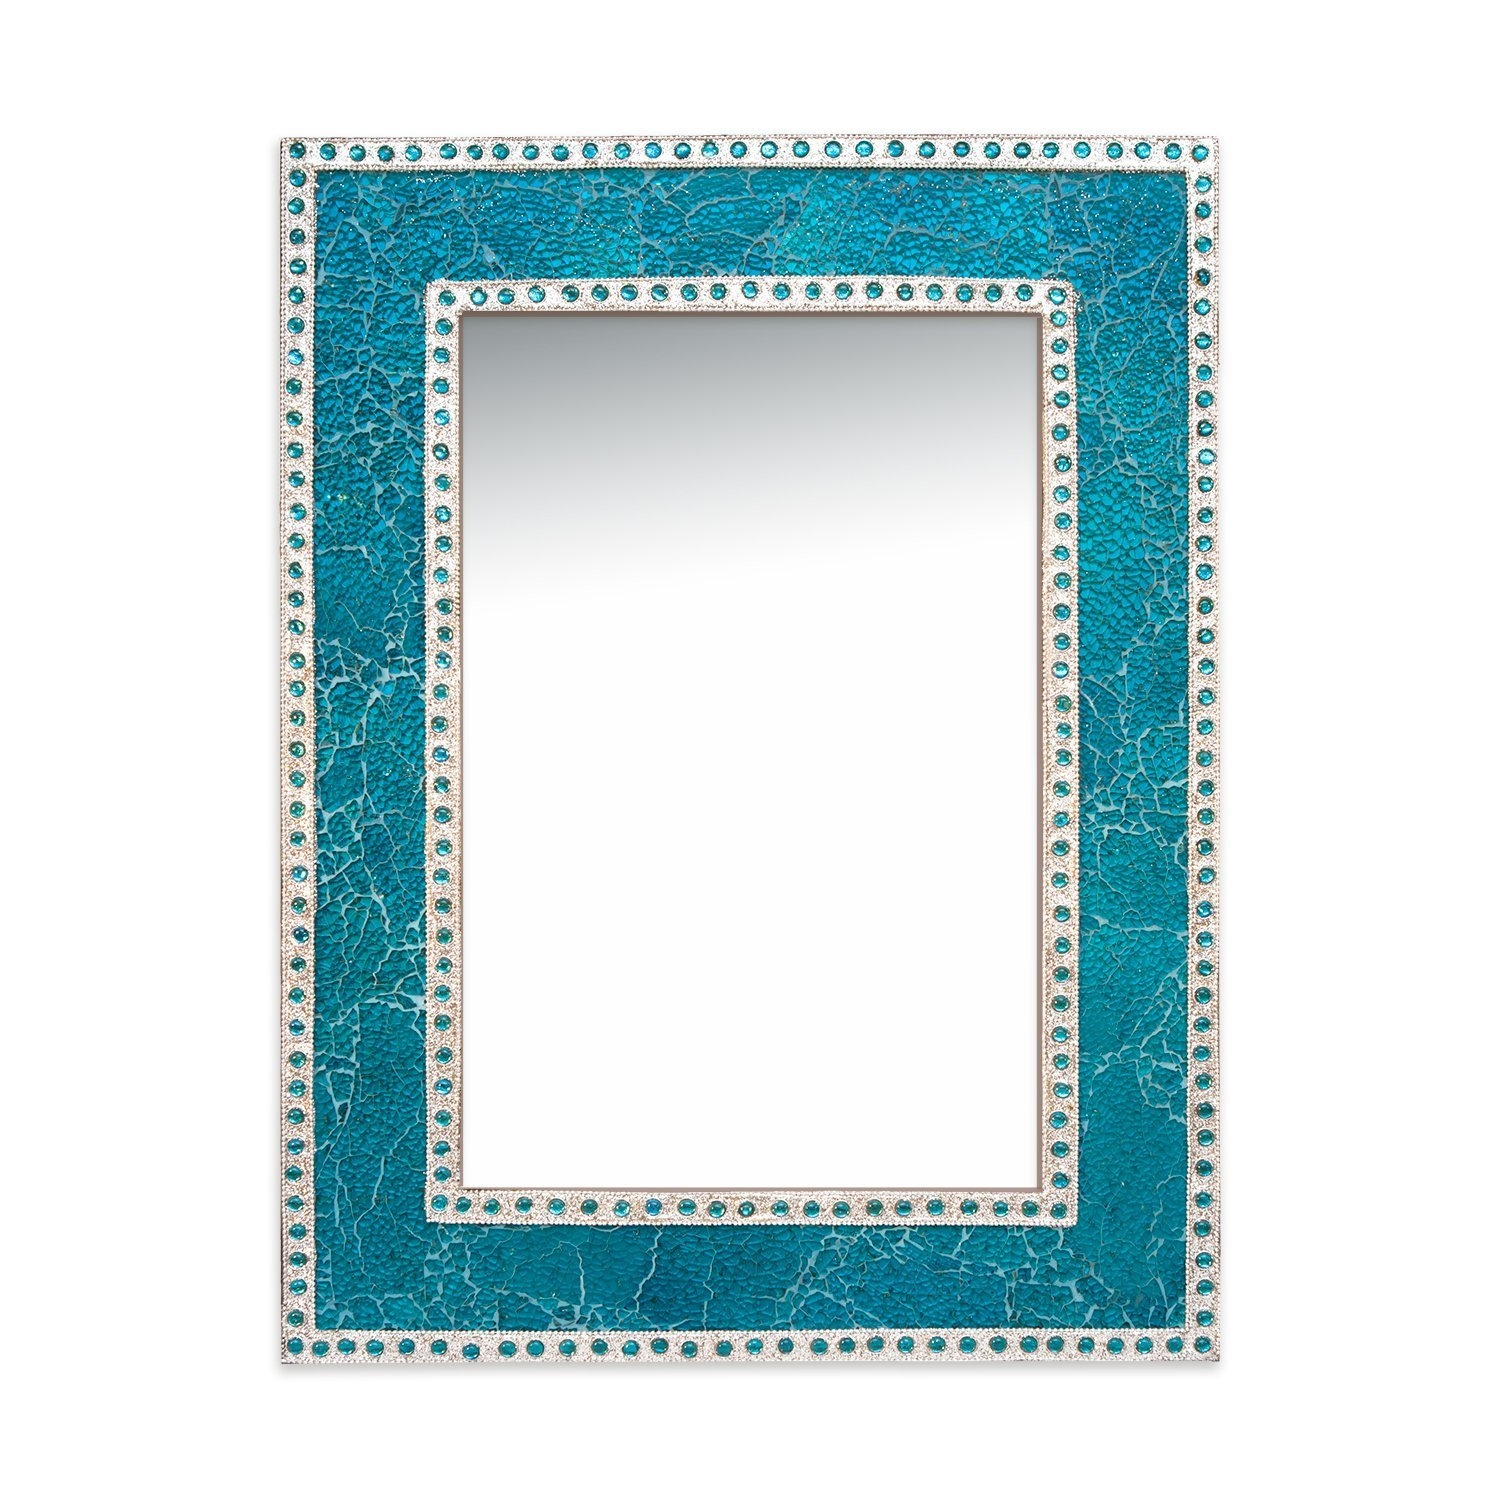 Decorshore Decorative Crackled Glass Mosaic Wall Mirror Reviews Inside Mosaic Wall Mirror (Image 6 of 15)